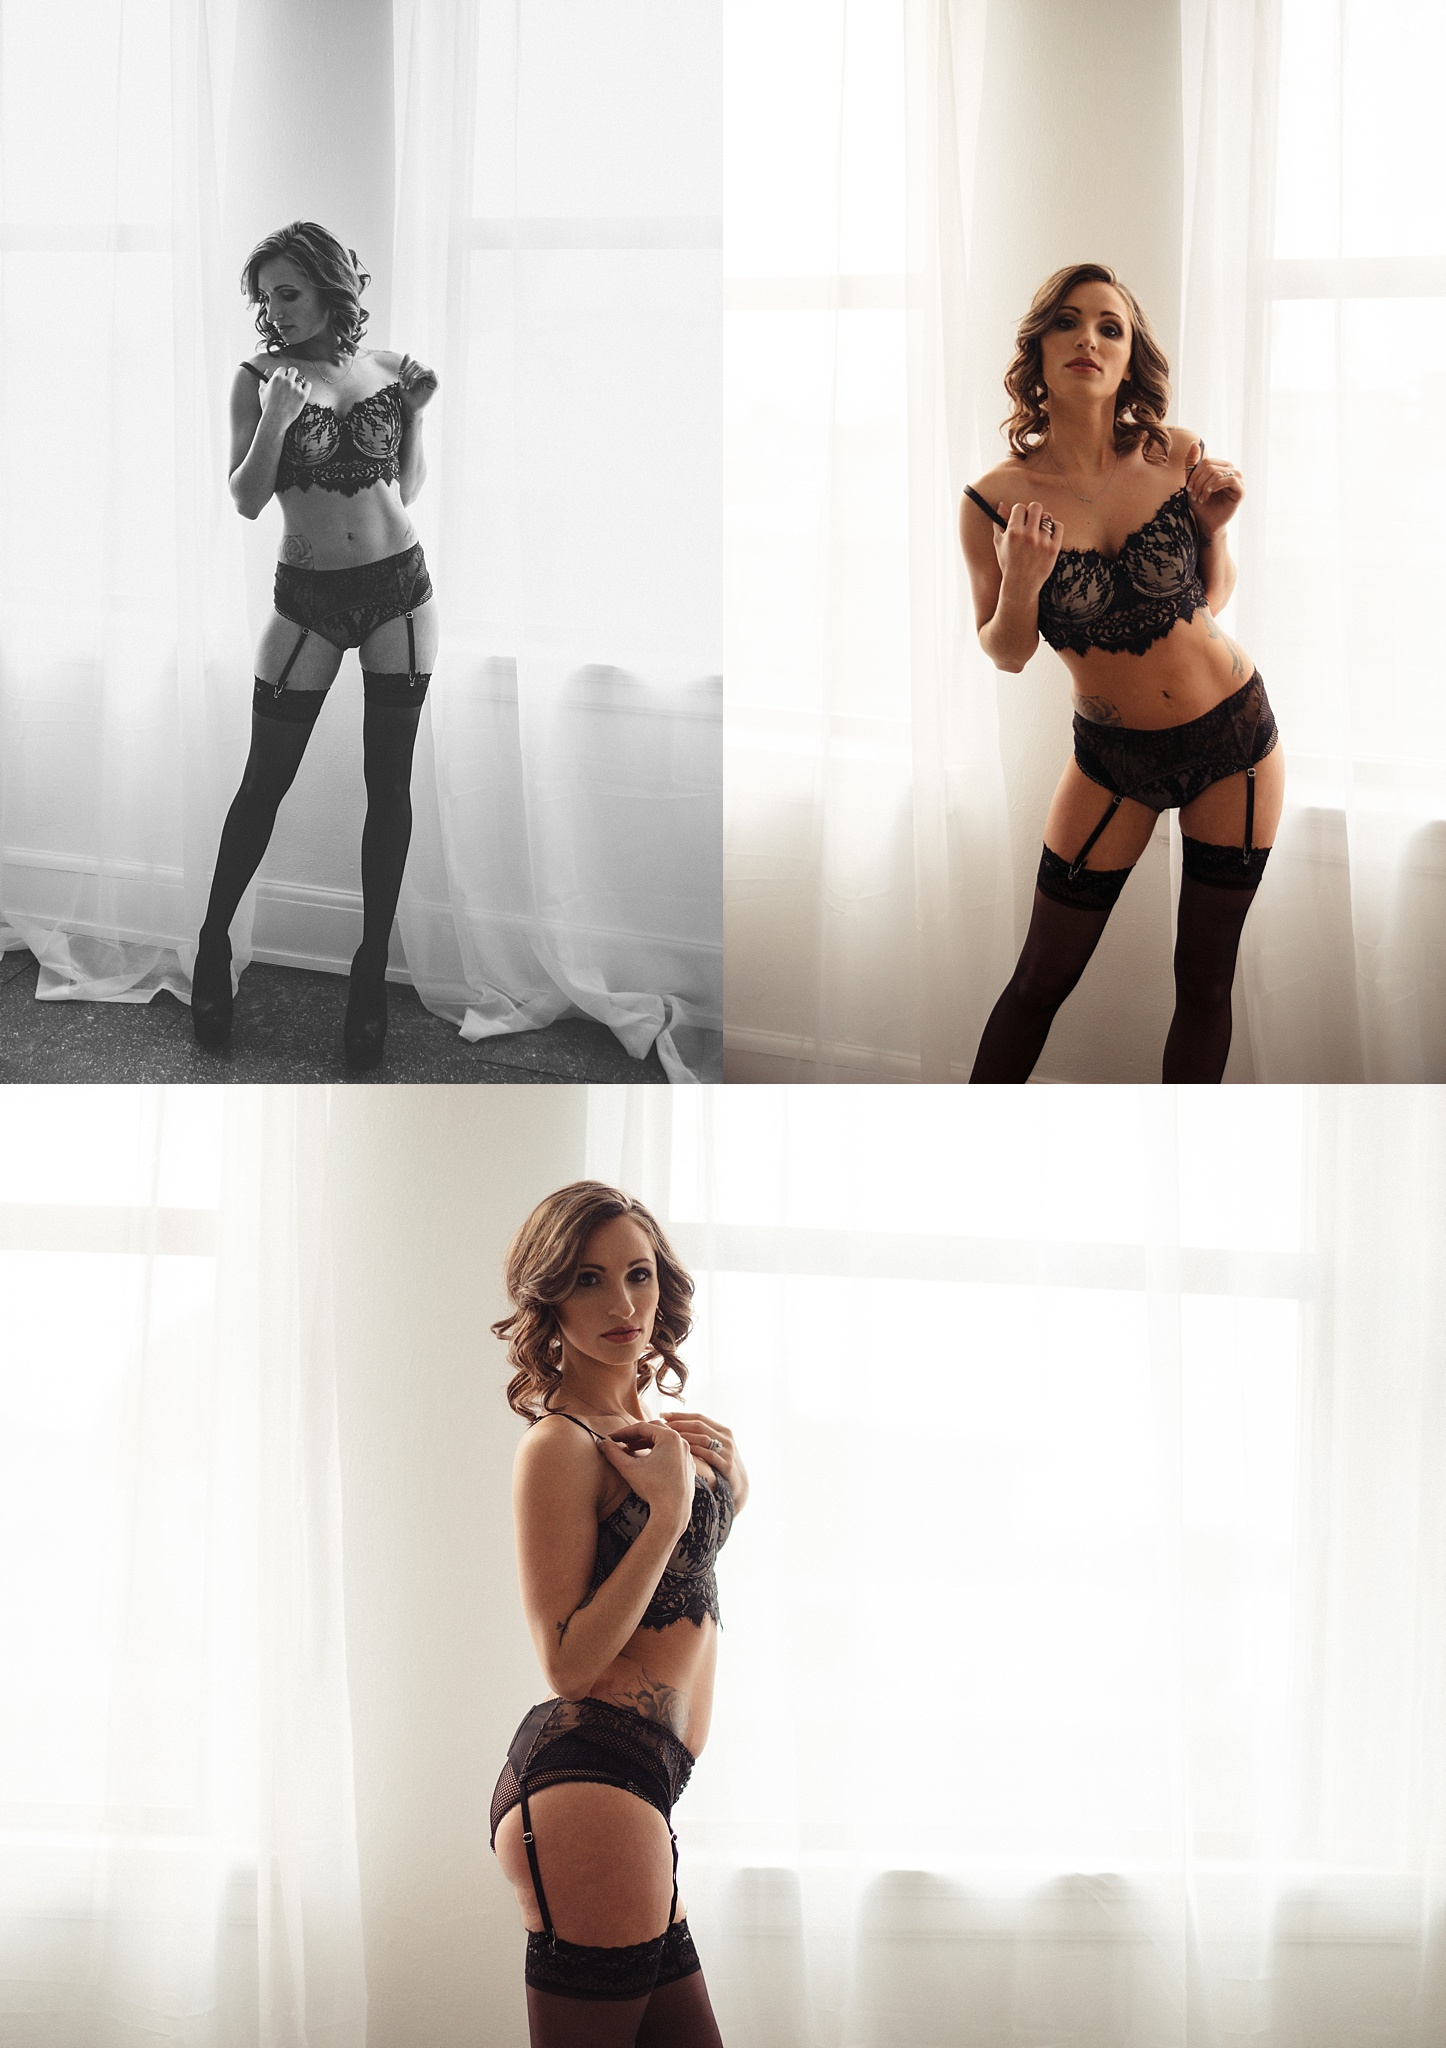 Shelby Chari Photography | South Bend Boudoir Photographer | Mon Chari Boudoir